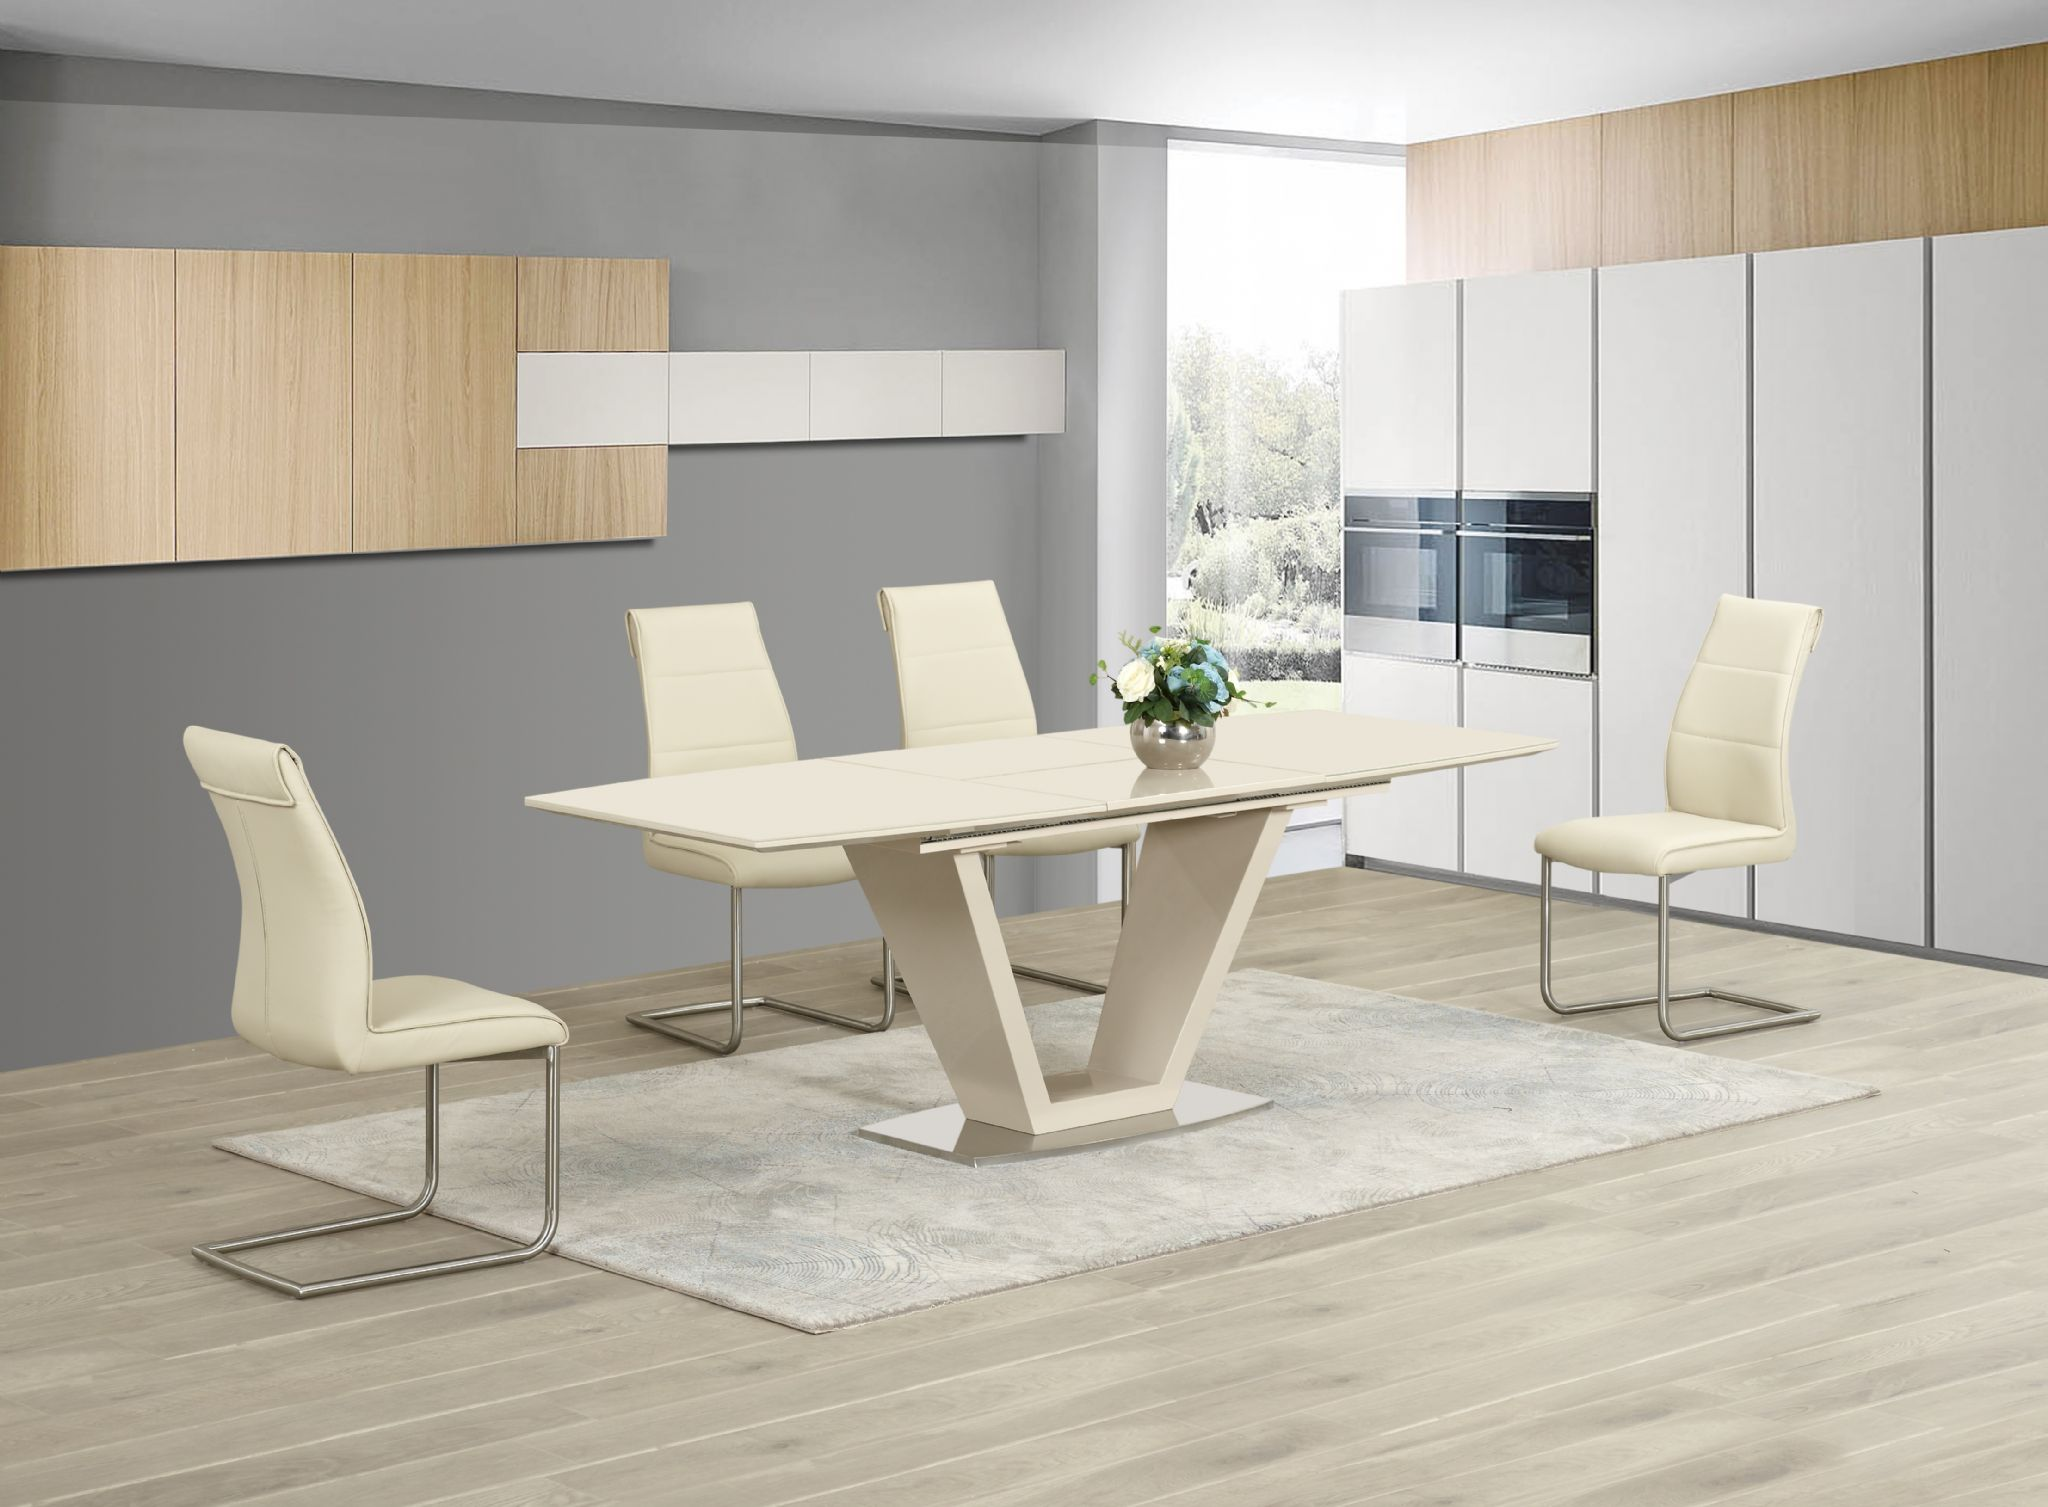 Delightful Modern Dining Room Table Chairs. Ga Loriga Cream Gloss Glass Designer Dining  Table Extending 160